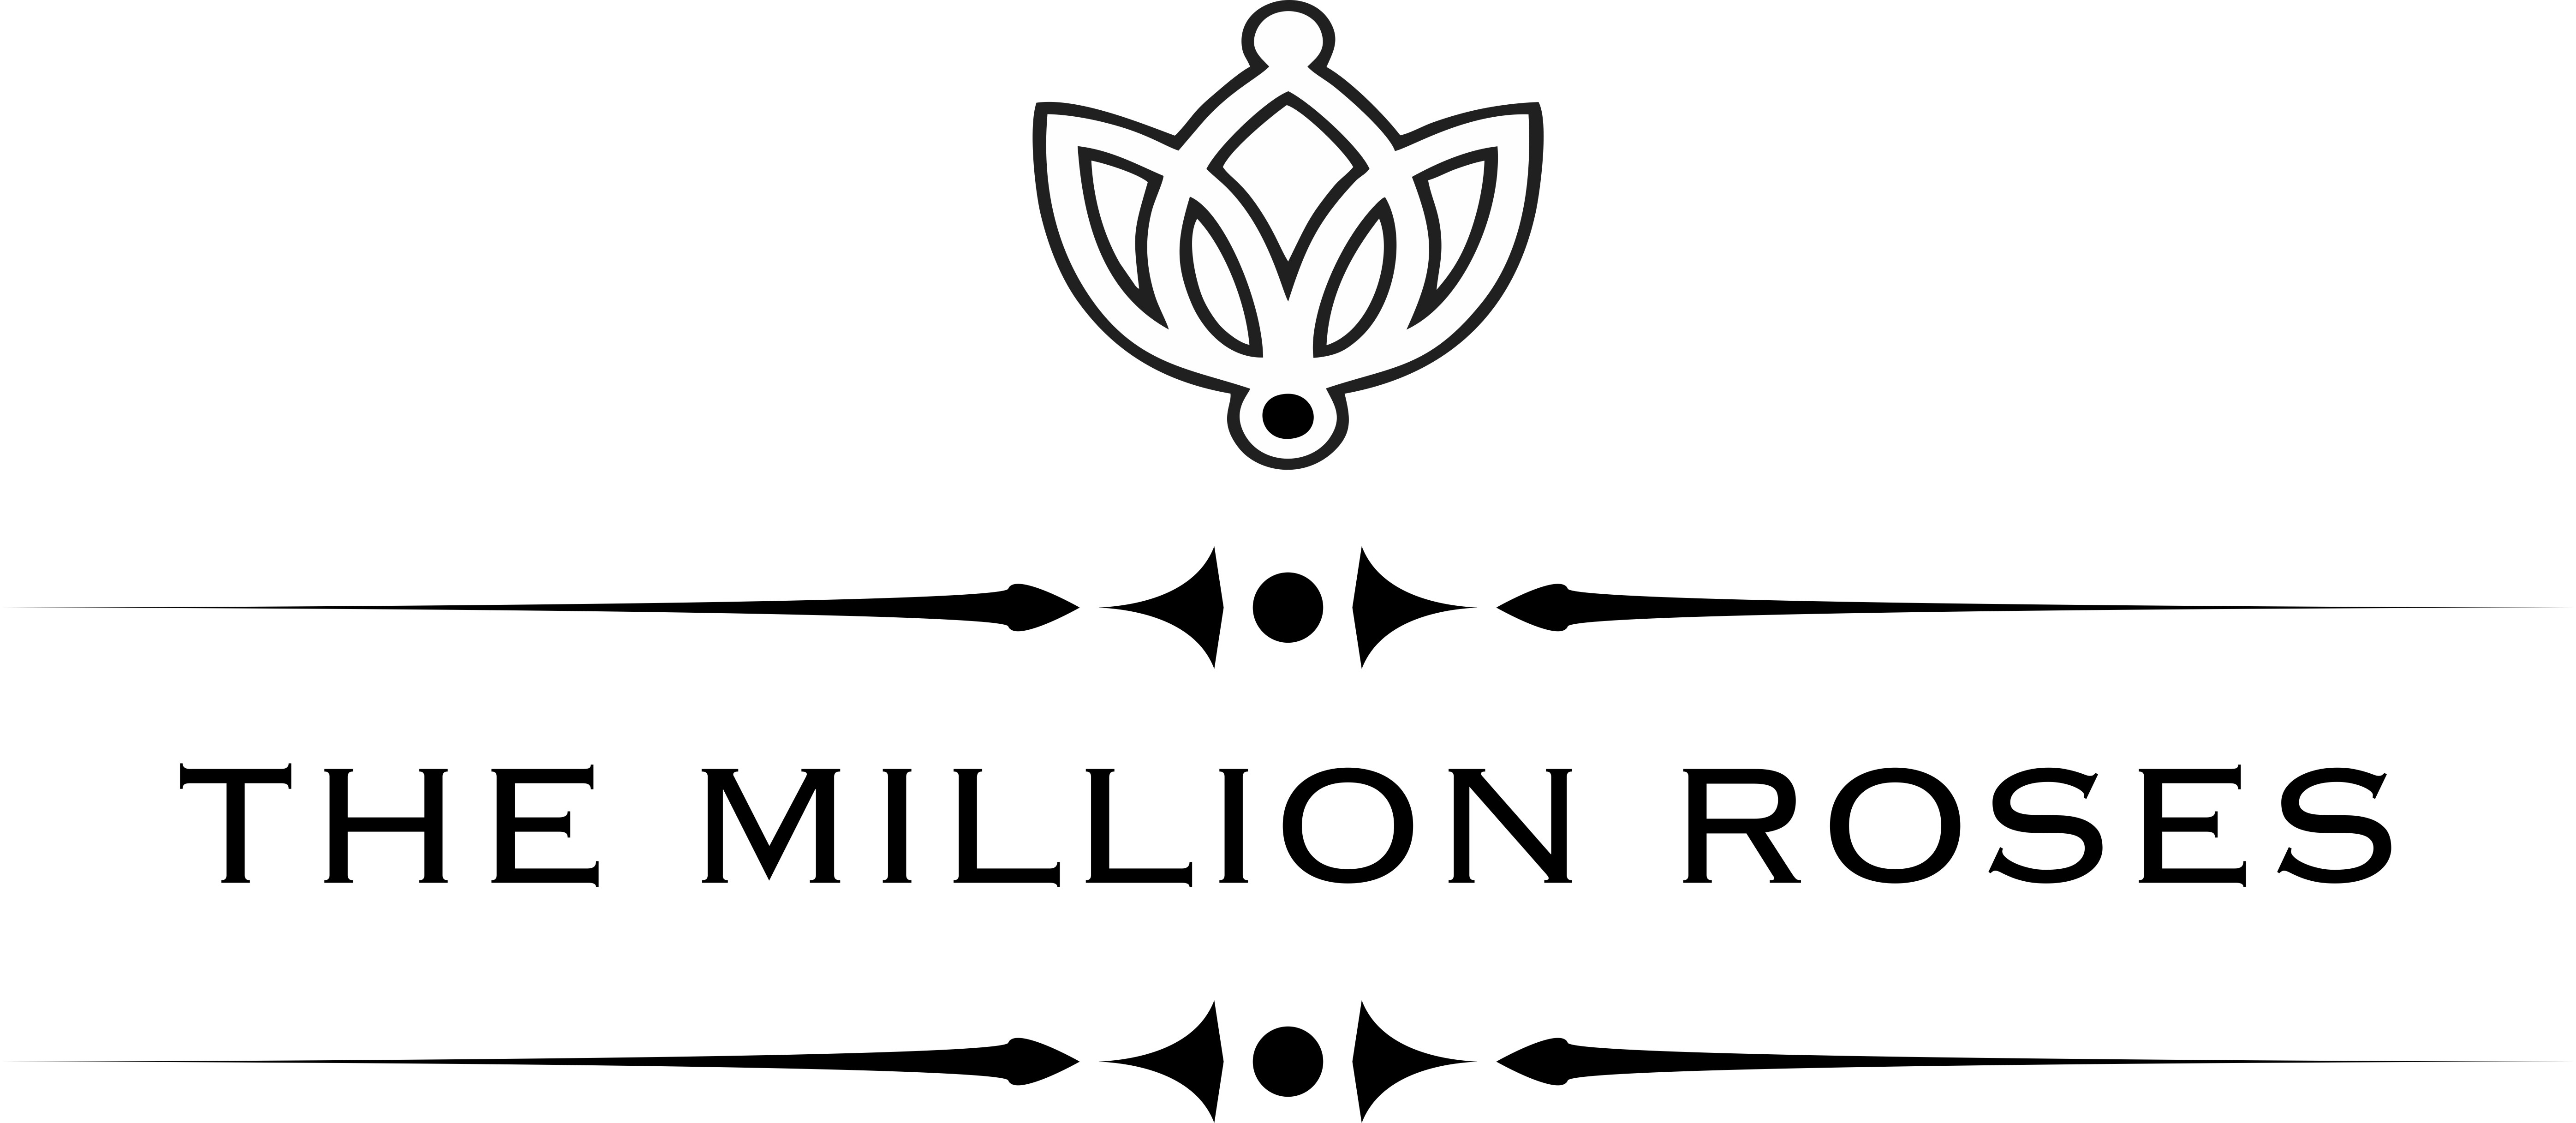 The Million Roses